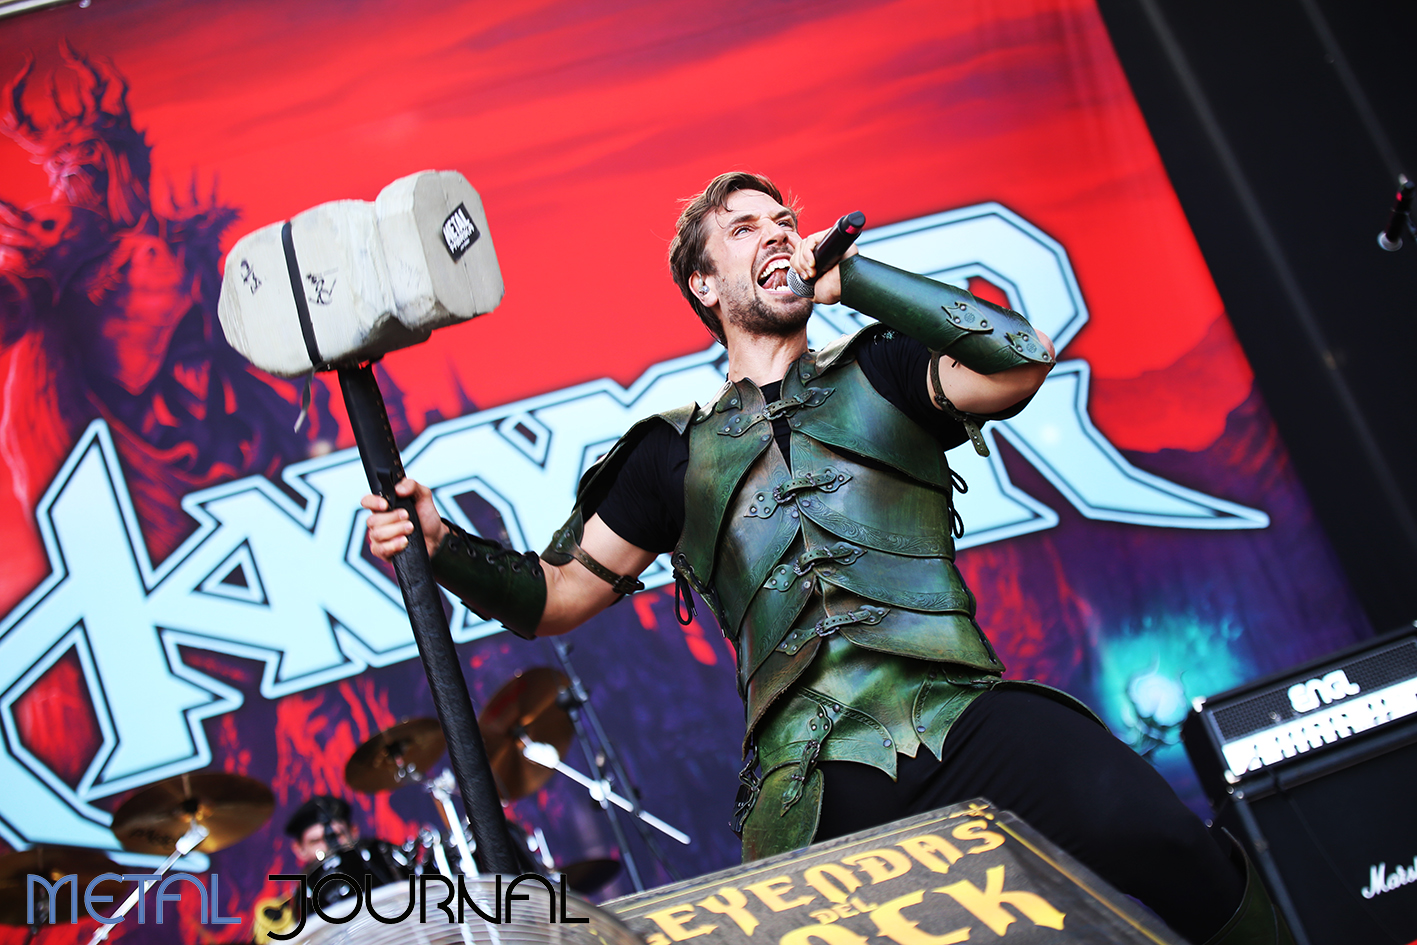 gloryhammer - leyendas del rock 2019 metal journal pic 1